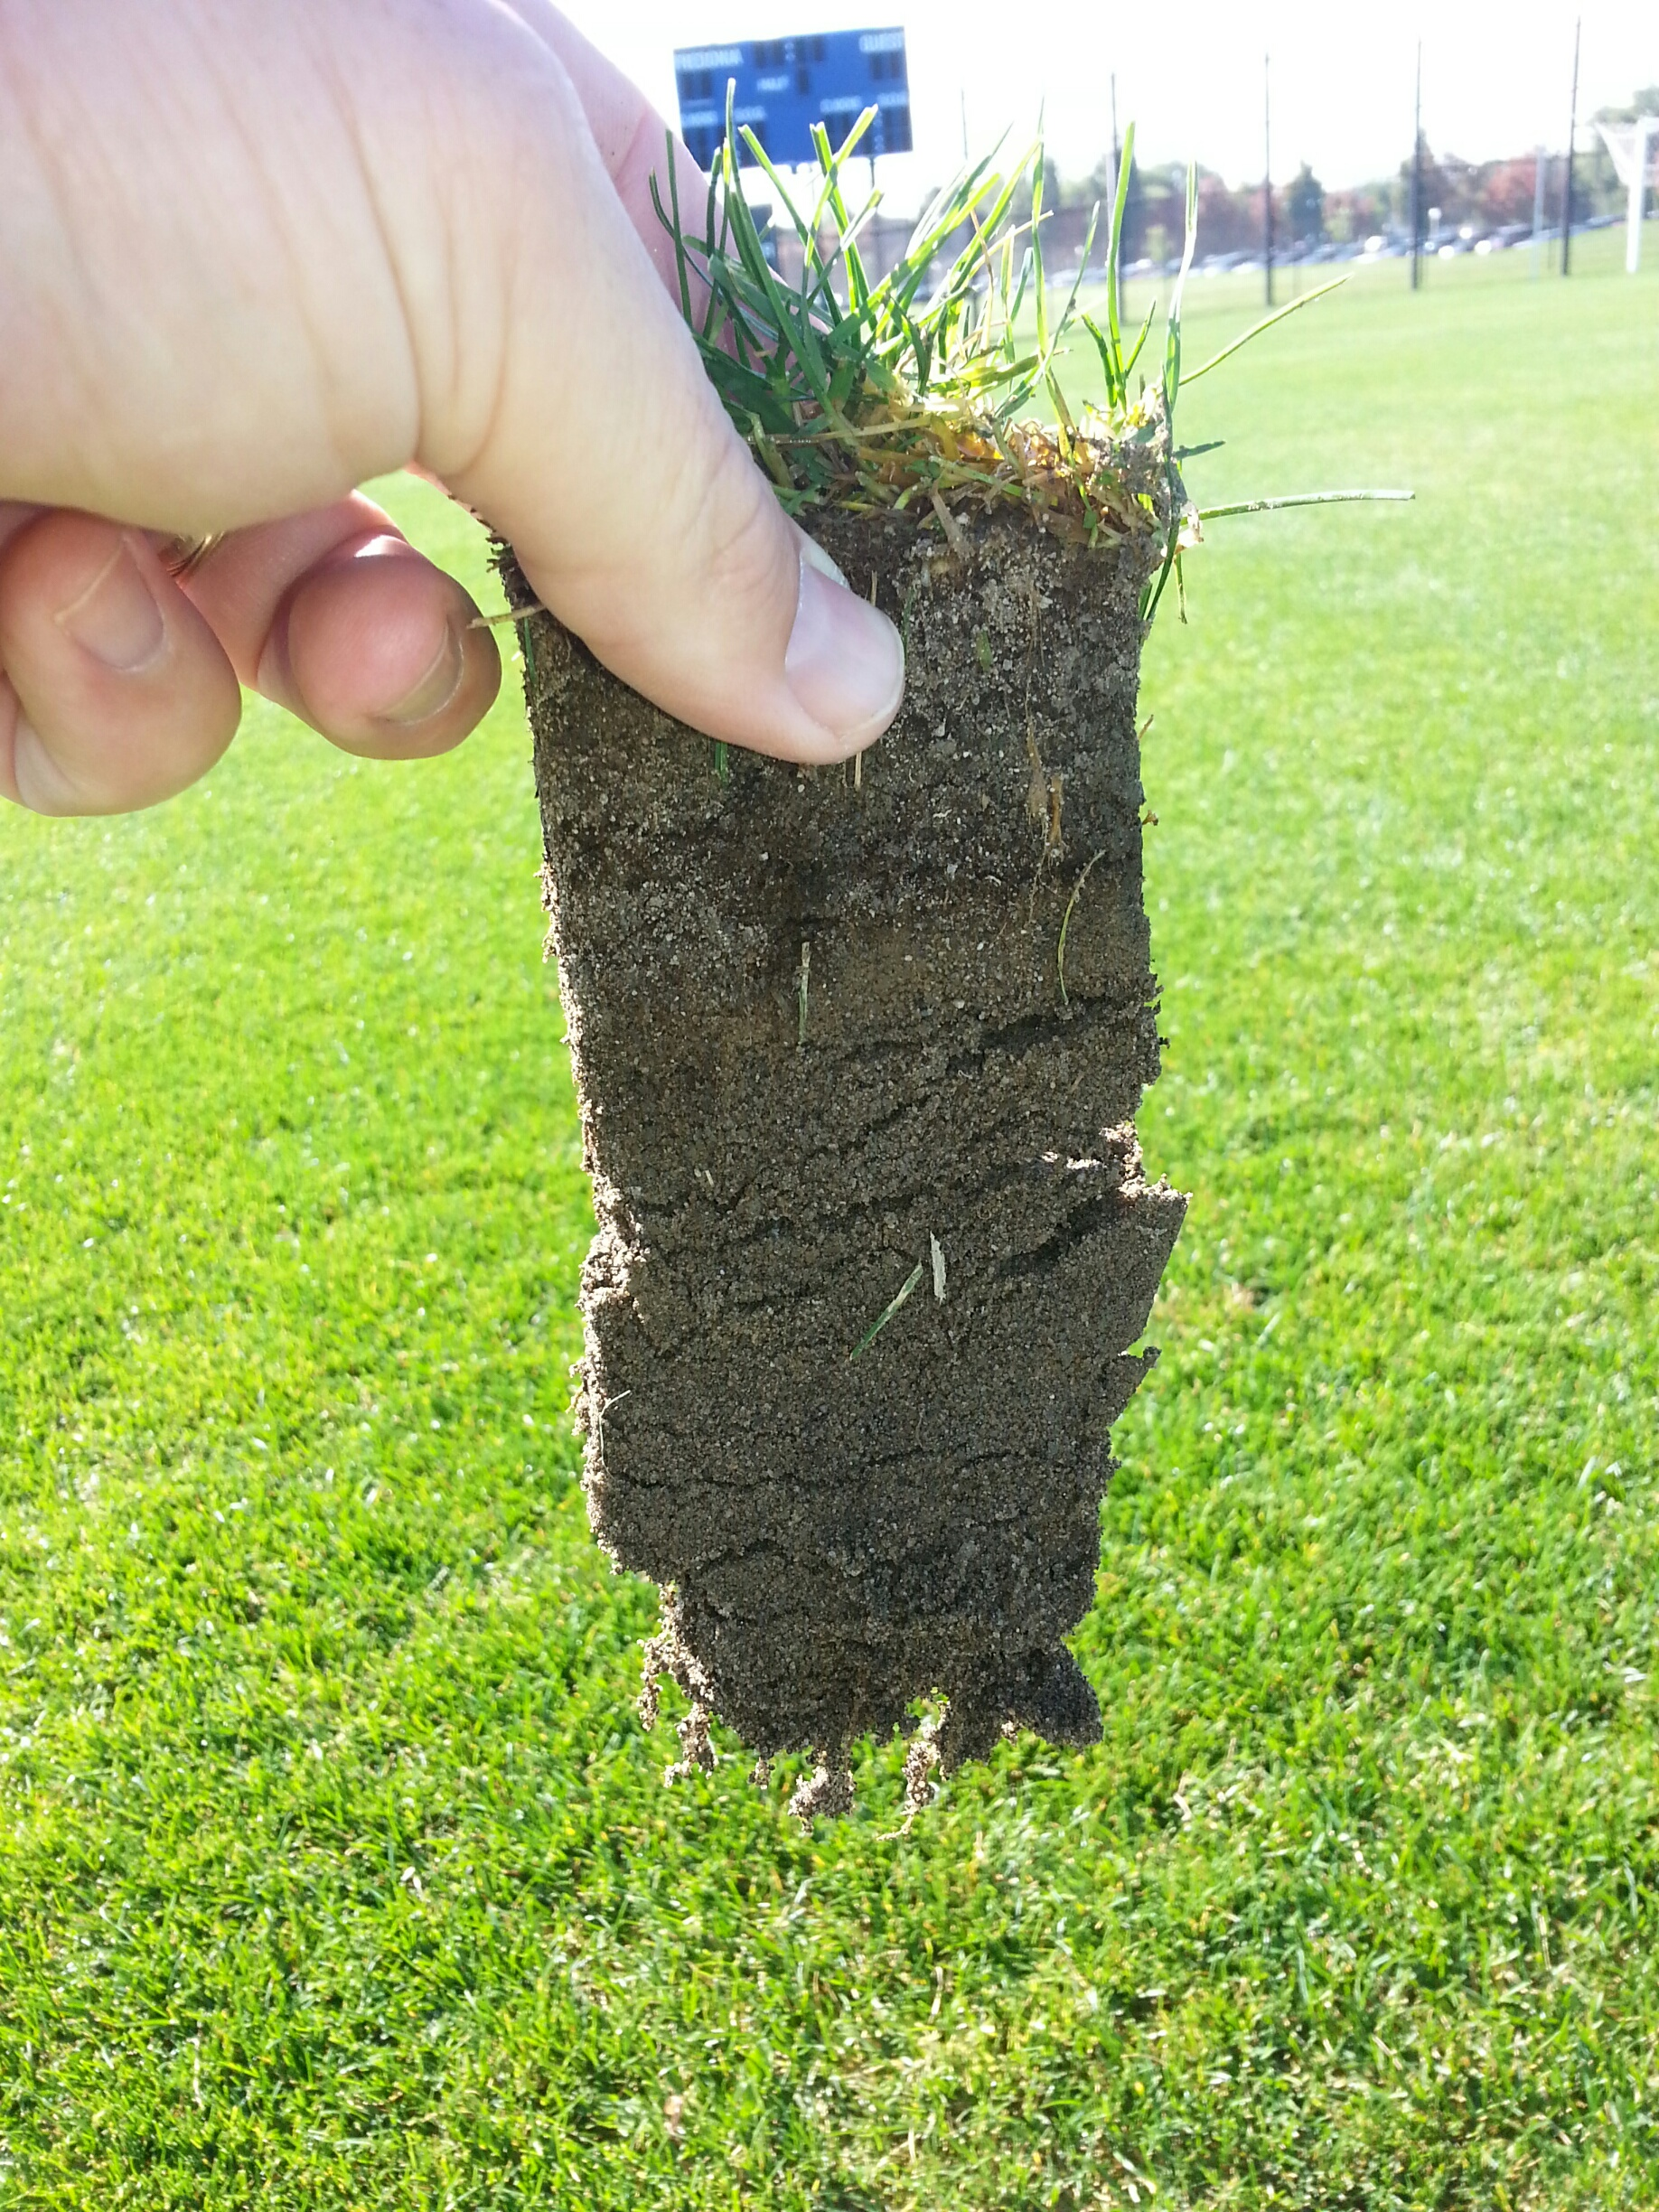 sports turf fertilizer